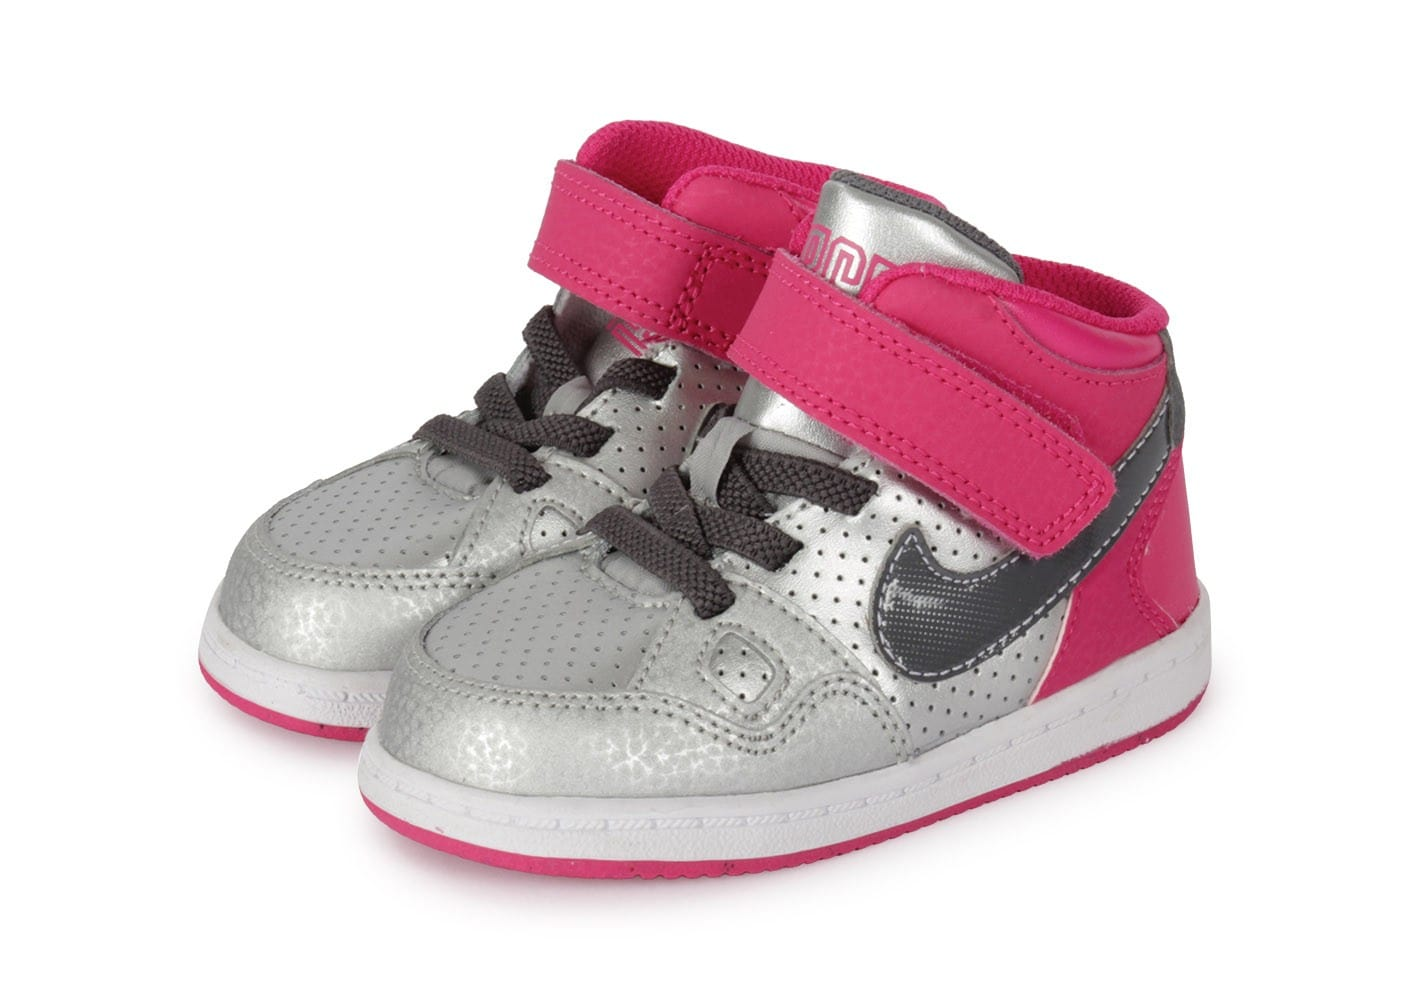 nike son of force b b argent e rose chaussures chaussures chausport. Black Bedroom Furniture Sets. Home Design Ideas